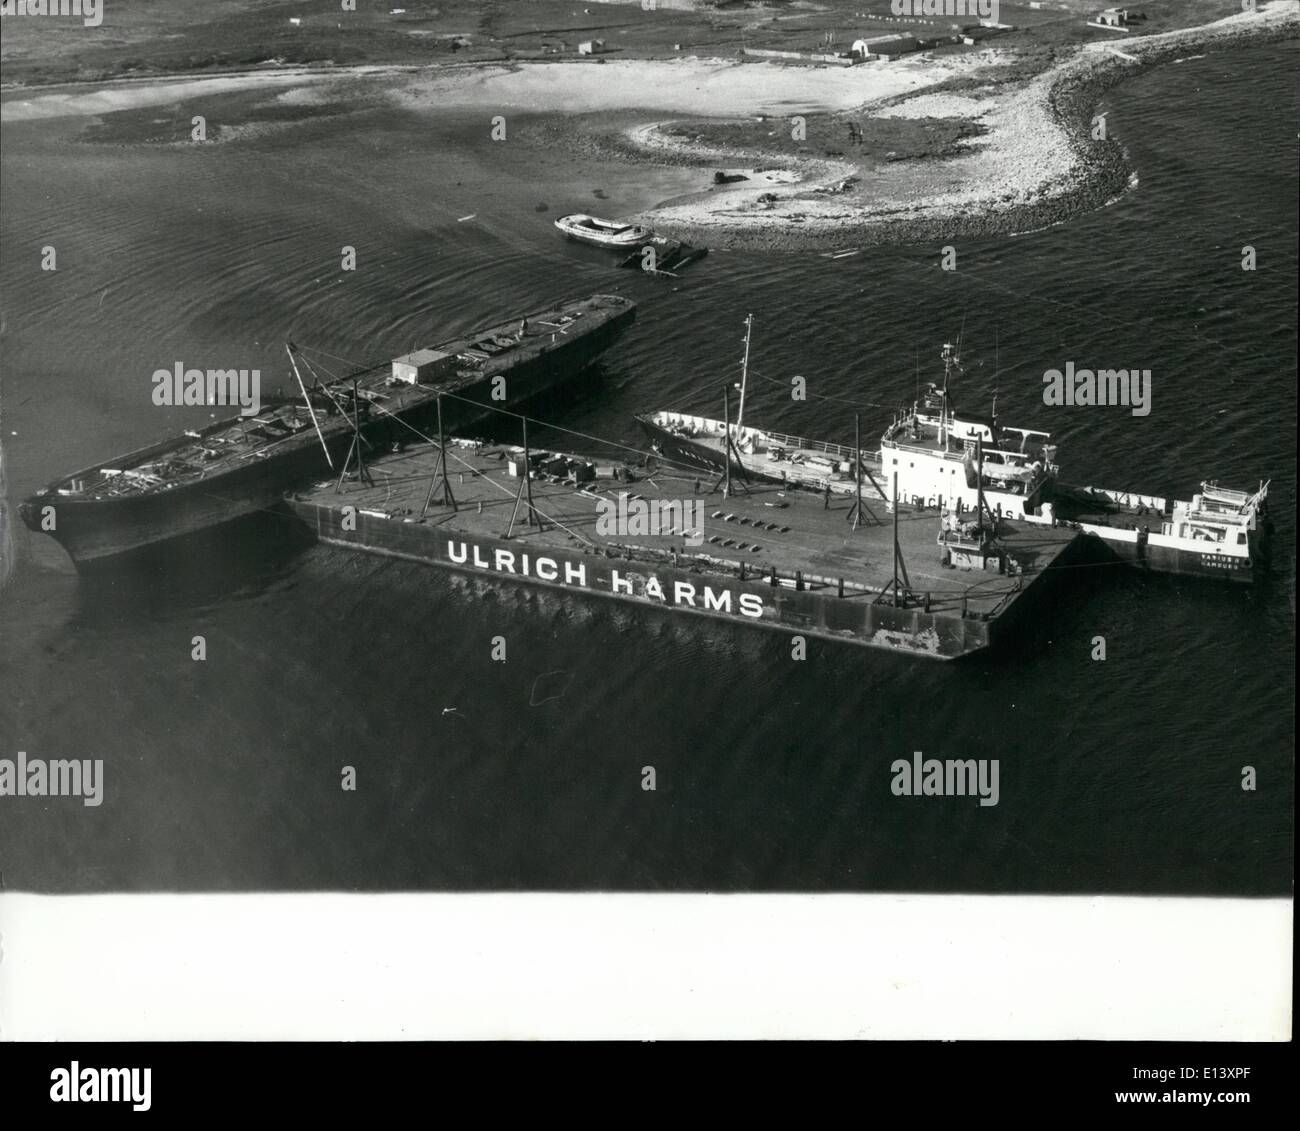 Mar. 27, 2012 - View of the S.S. Great Britain as the mast was lowered Mulus III pontoon and tug Various alongside all in Sparrow Cove. - Stock Image